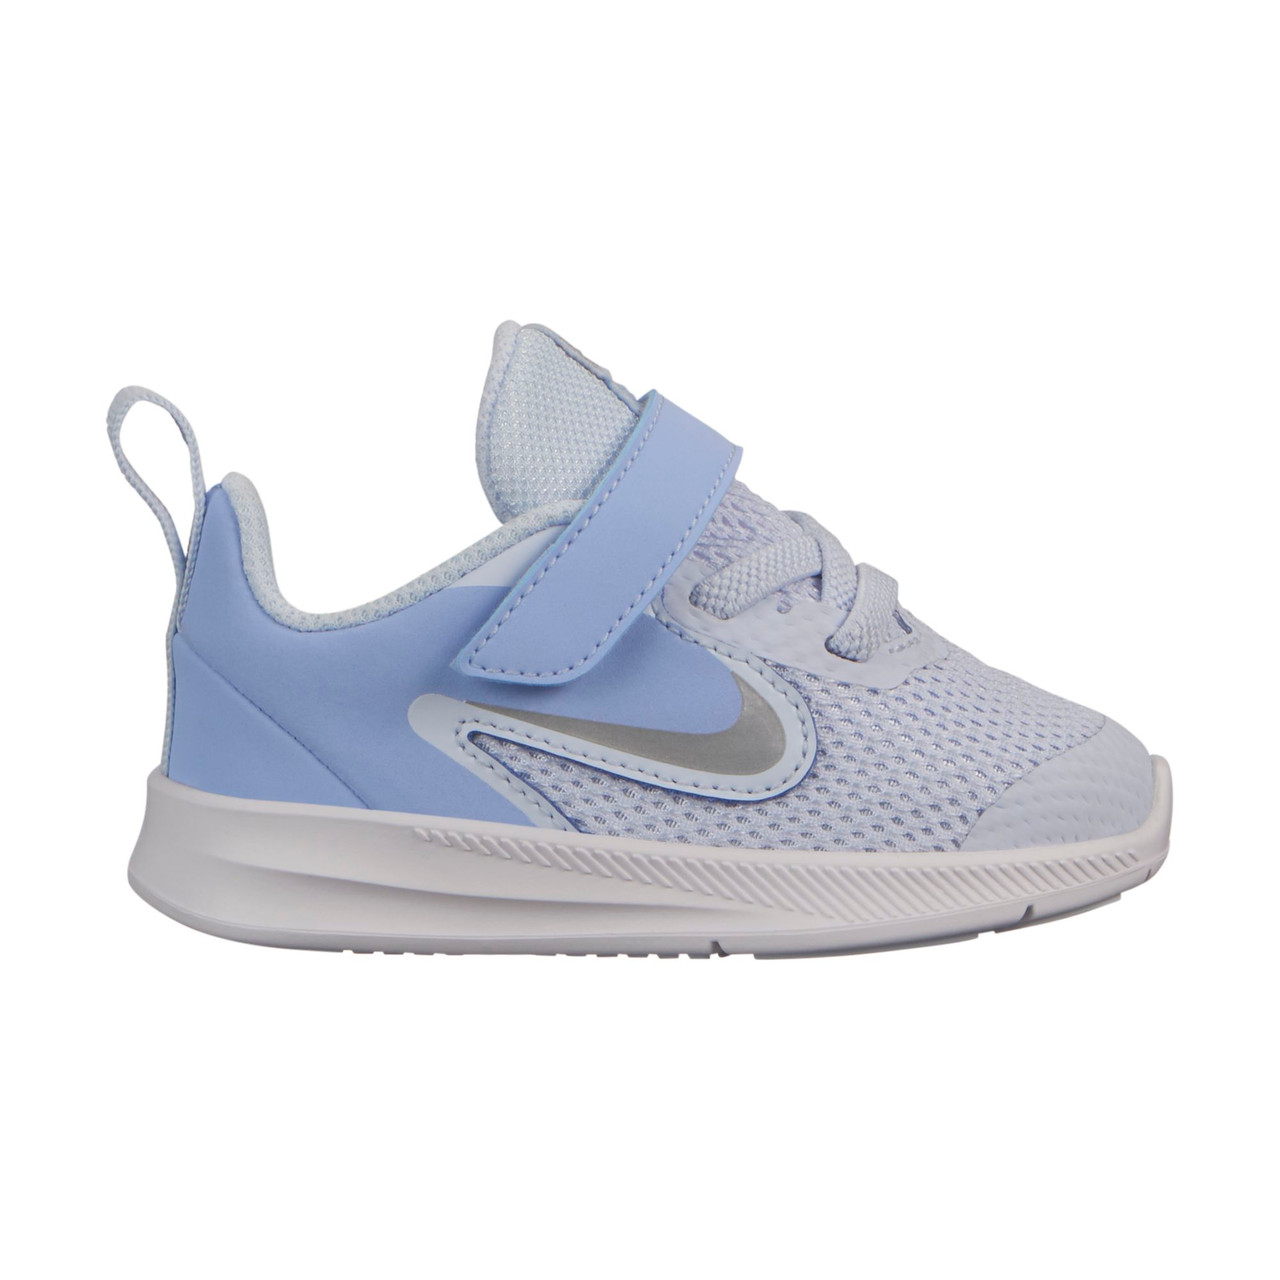 newest collection da941 5b10f Nike Kids Downshifter 9 (TDV) Toddler Shoe - Sieverts Sporting Goods